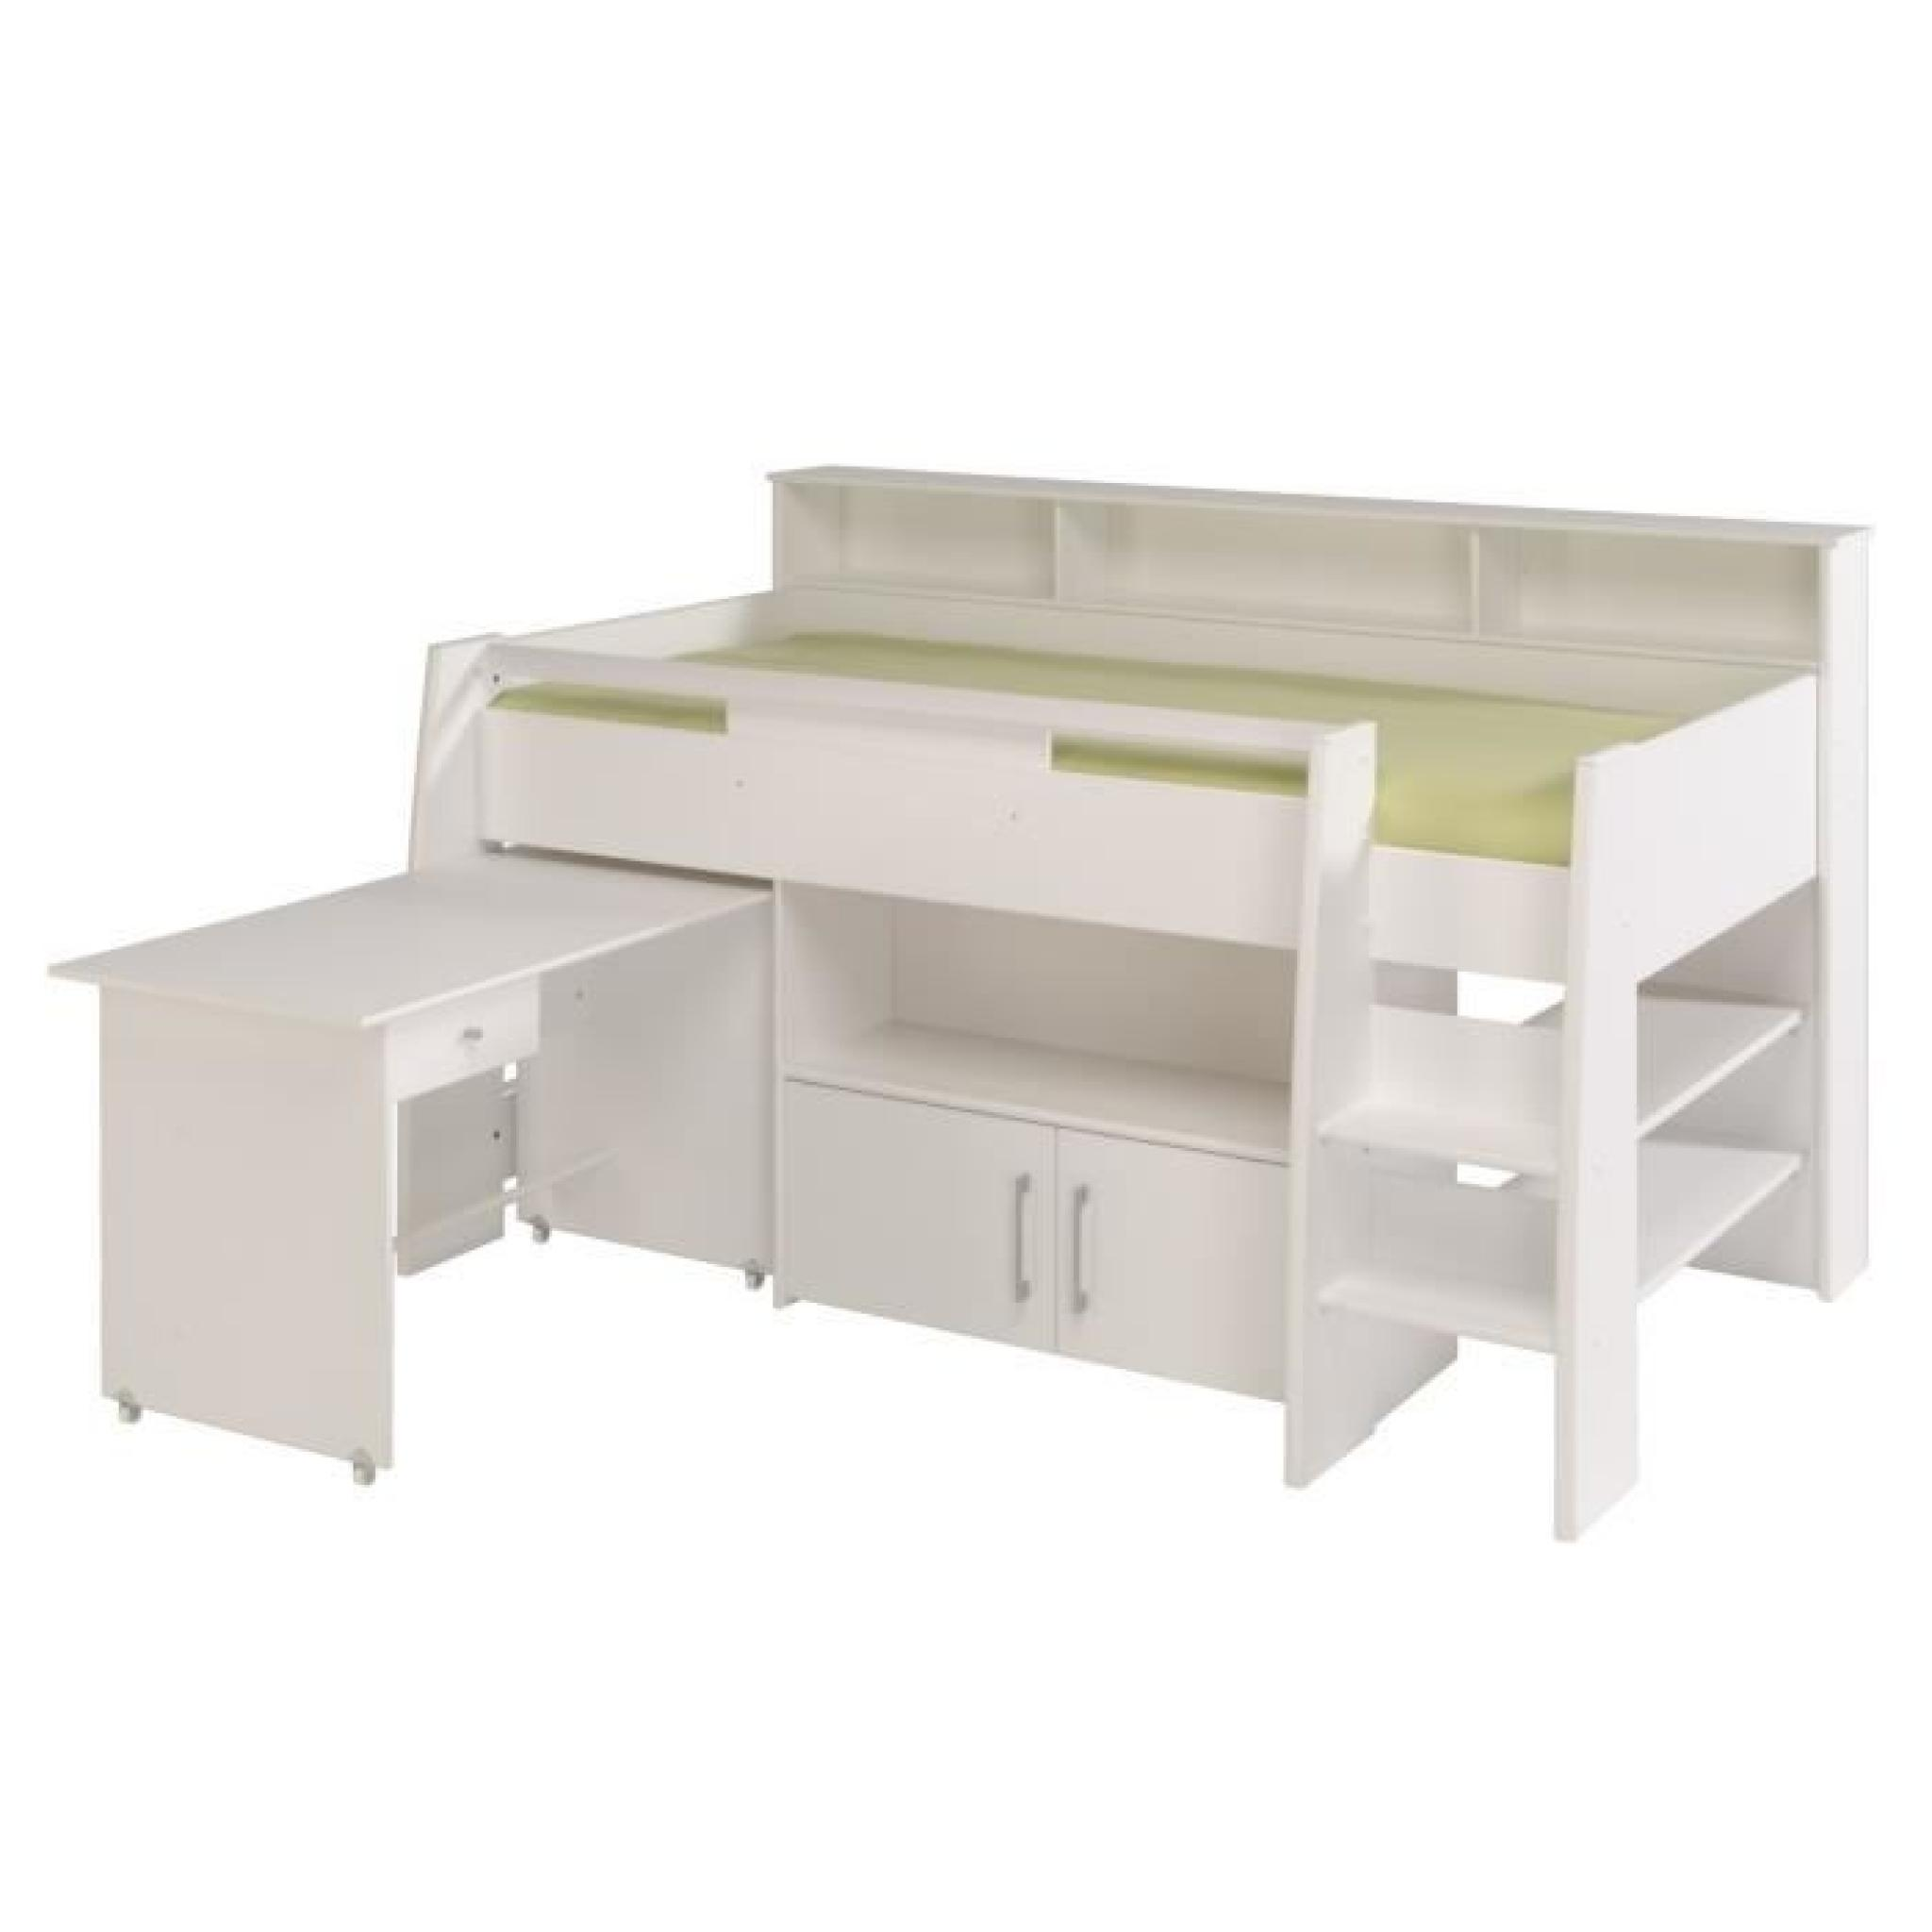 dave lit combin 90cm bureau rangement blanc achat vente lit mezzanine pas cher couleur et. Black Bedroom Furniture Sets. Home Design Ideas